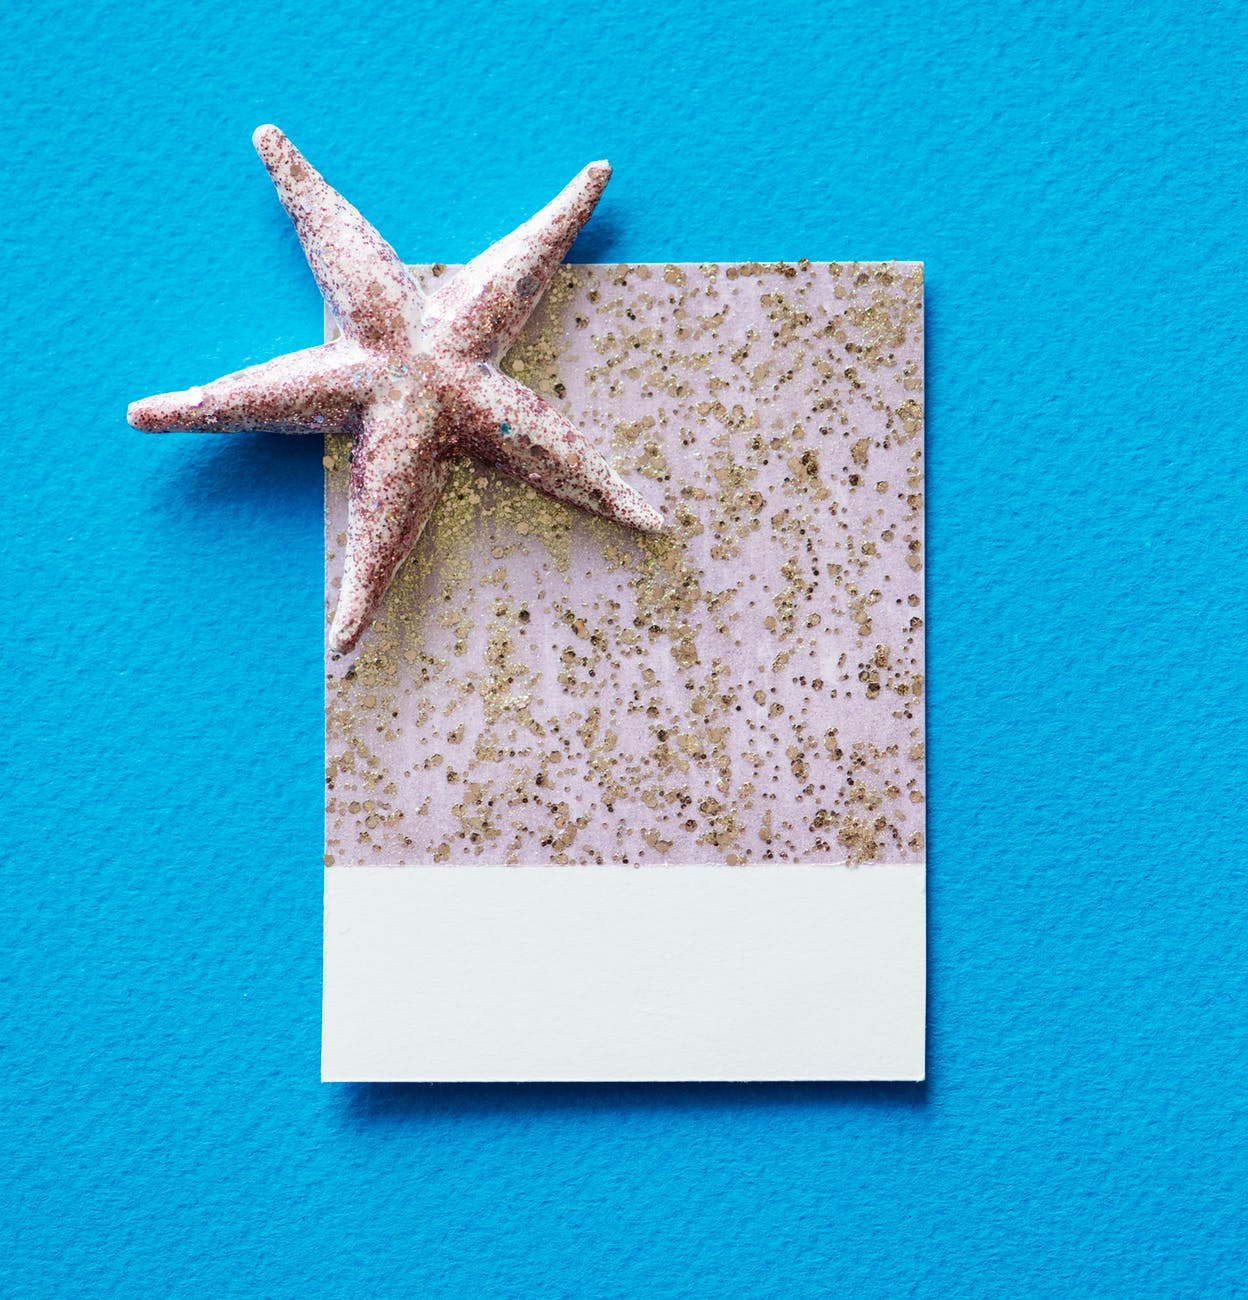 gray starfish and white and gray paper on blue surface